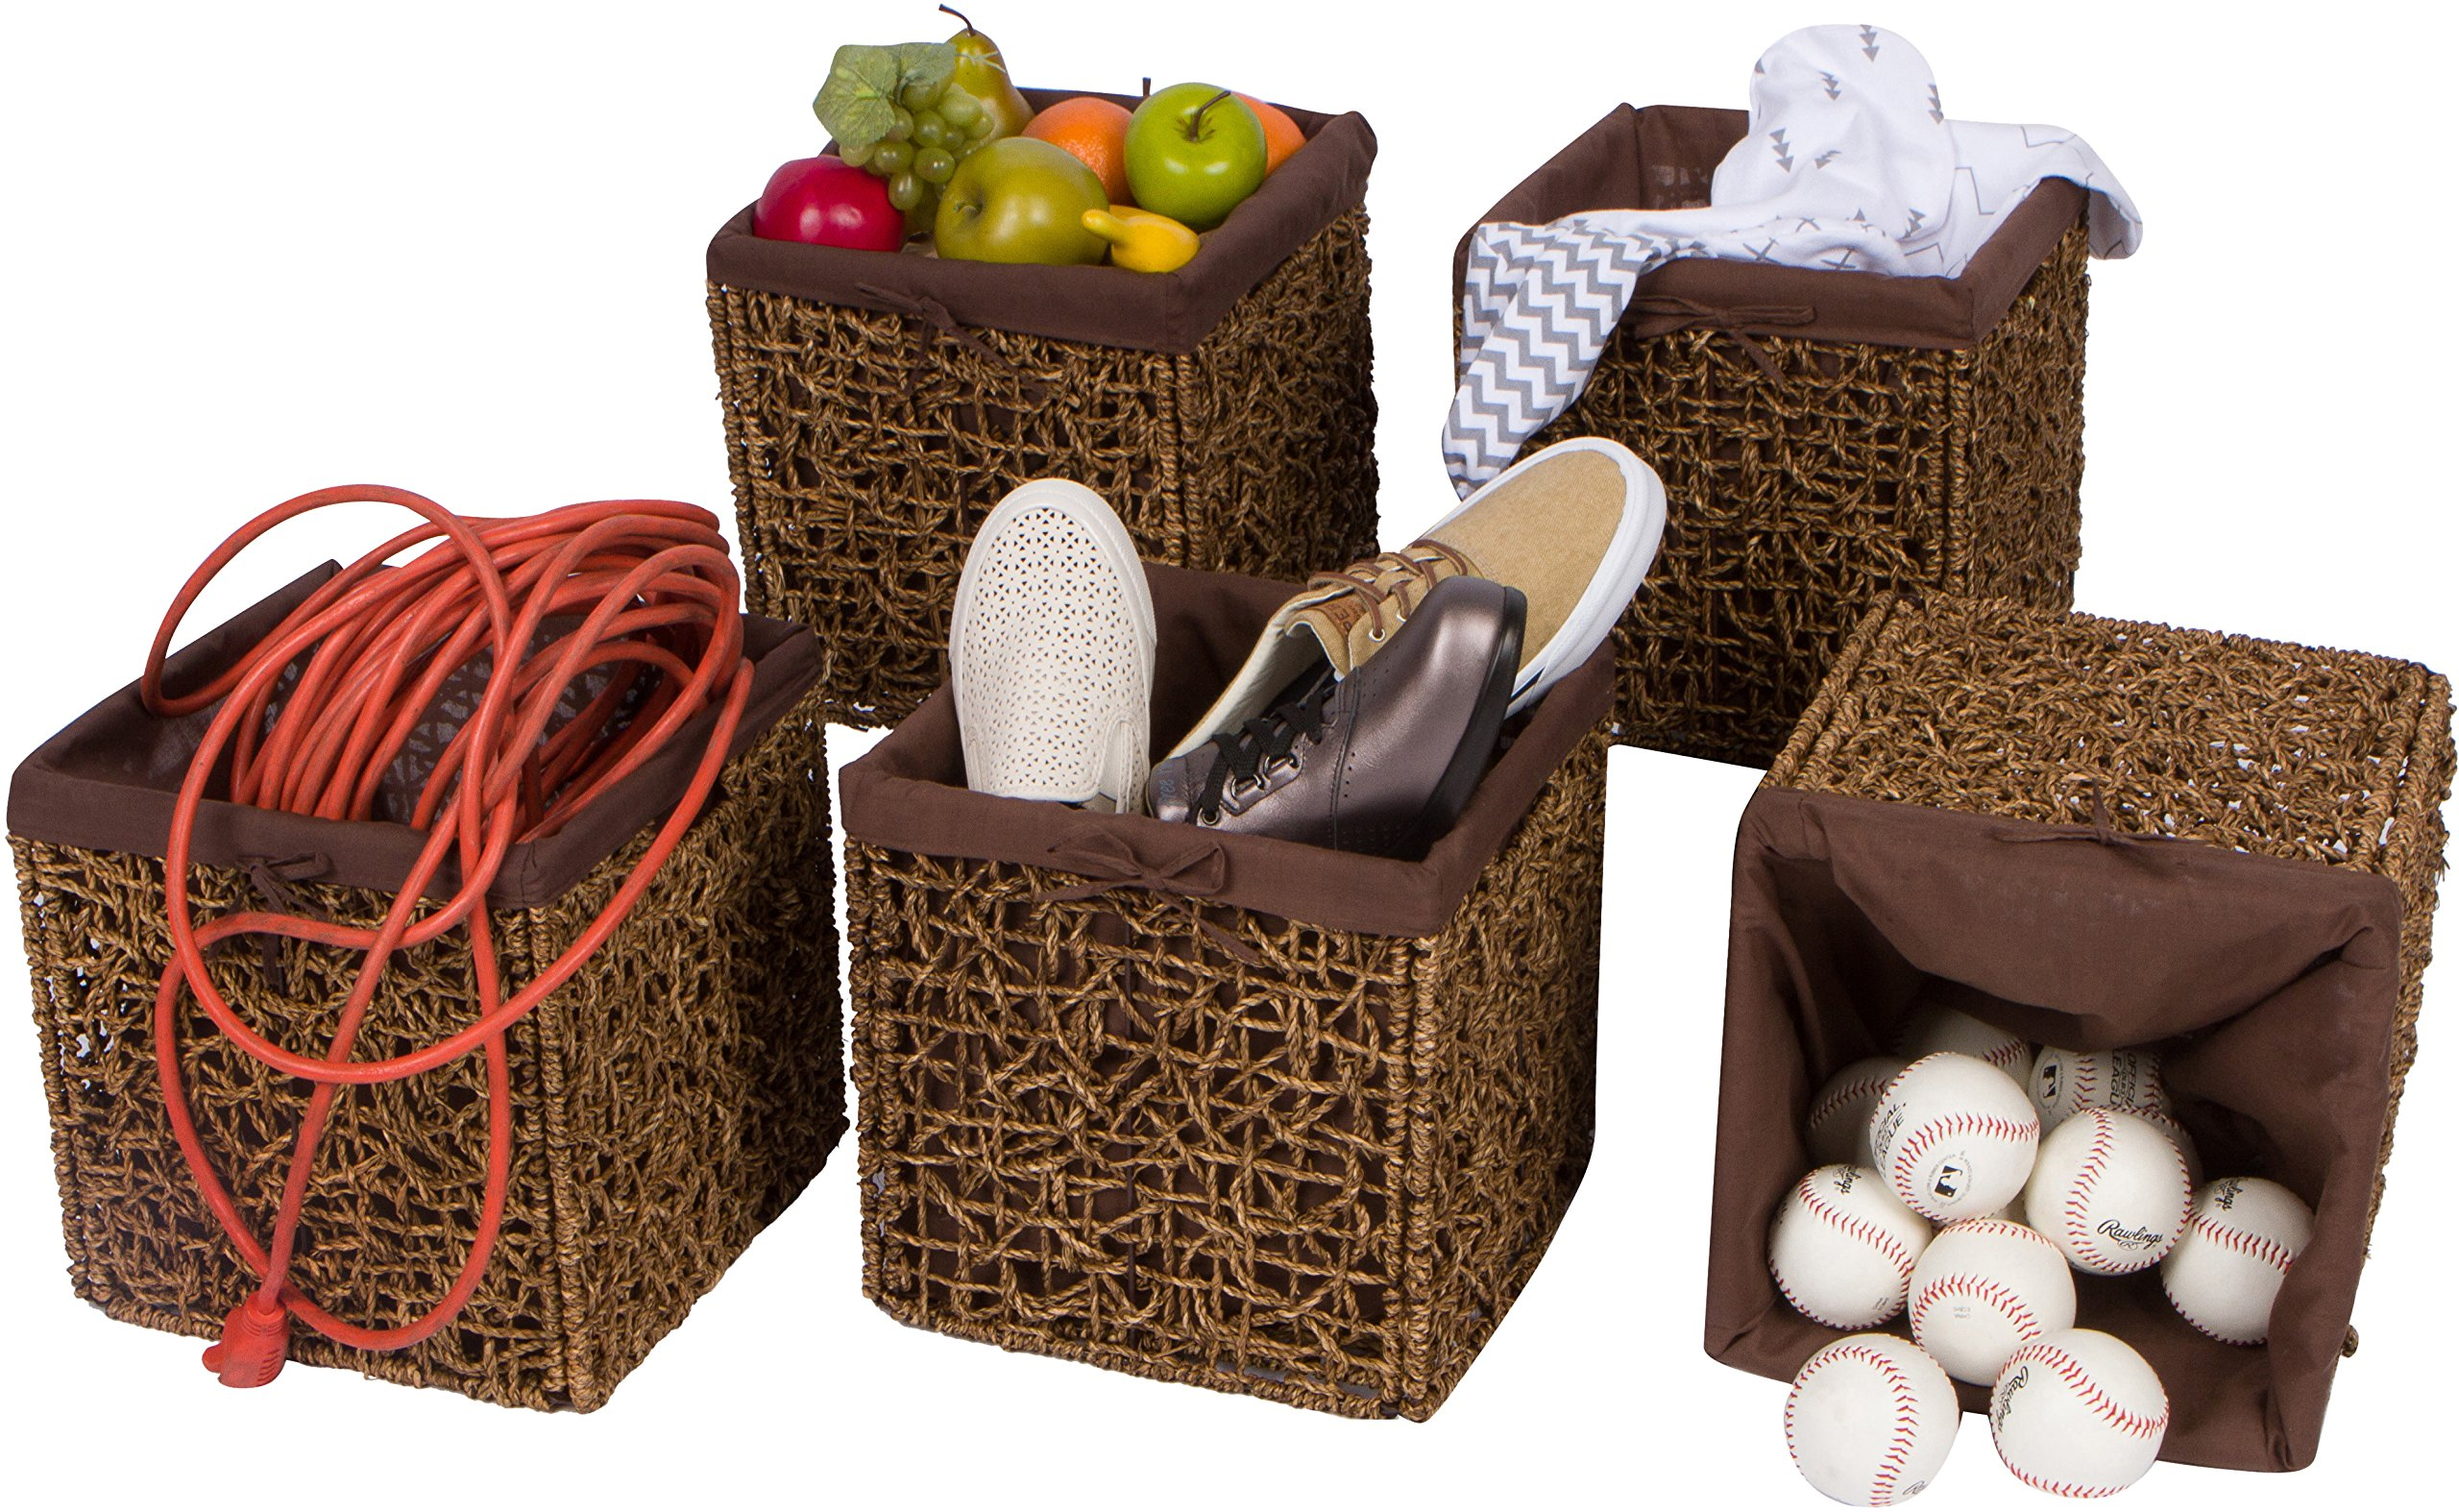 "Trademark Innovations 10.6"" Foldable Seagrass Storage Basket with Liner and Iron Wire Frame (Set of 5) - Each basket measures 10.6""L x 10.6""W x 10.6""H and comes as a set of 5 Made from beautiful seagrass over an iron wire frame with fabric liner. Color may vary slightly Folds flat for easy storage - living-room-decor, living-room, baskets-storage - 91DopoopAvL -"